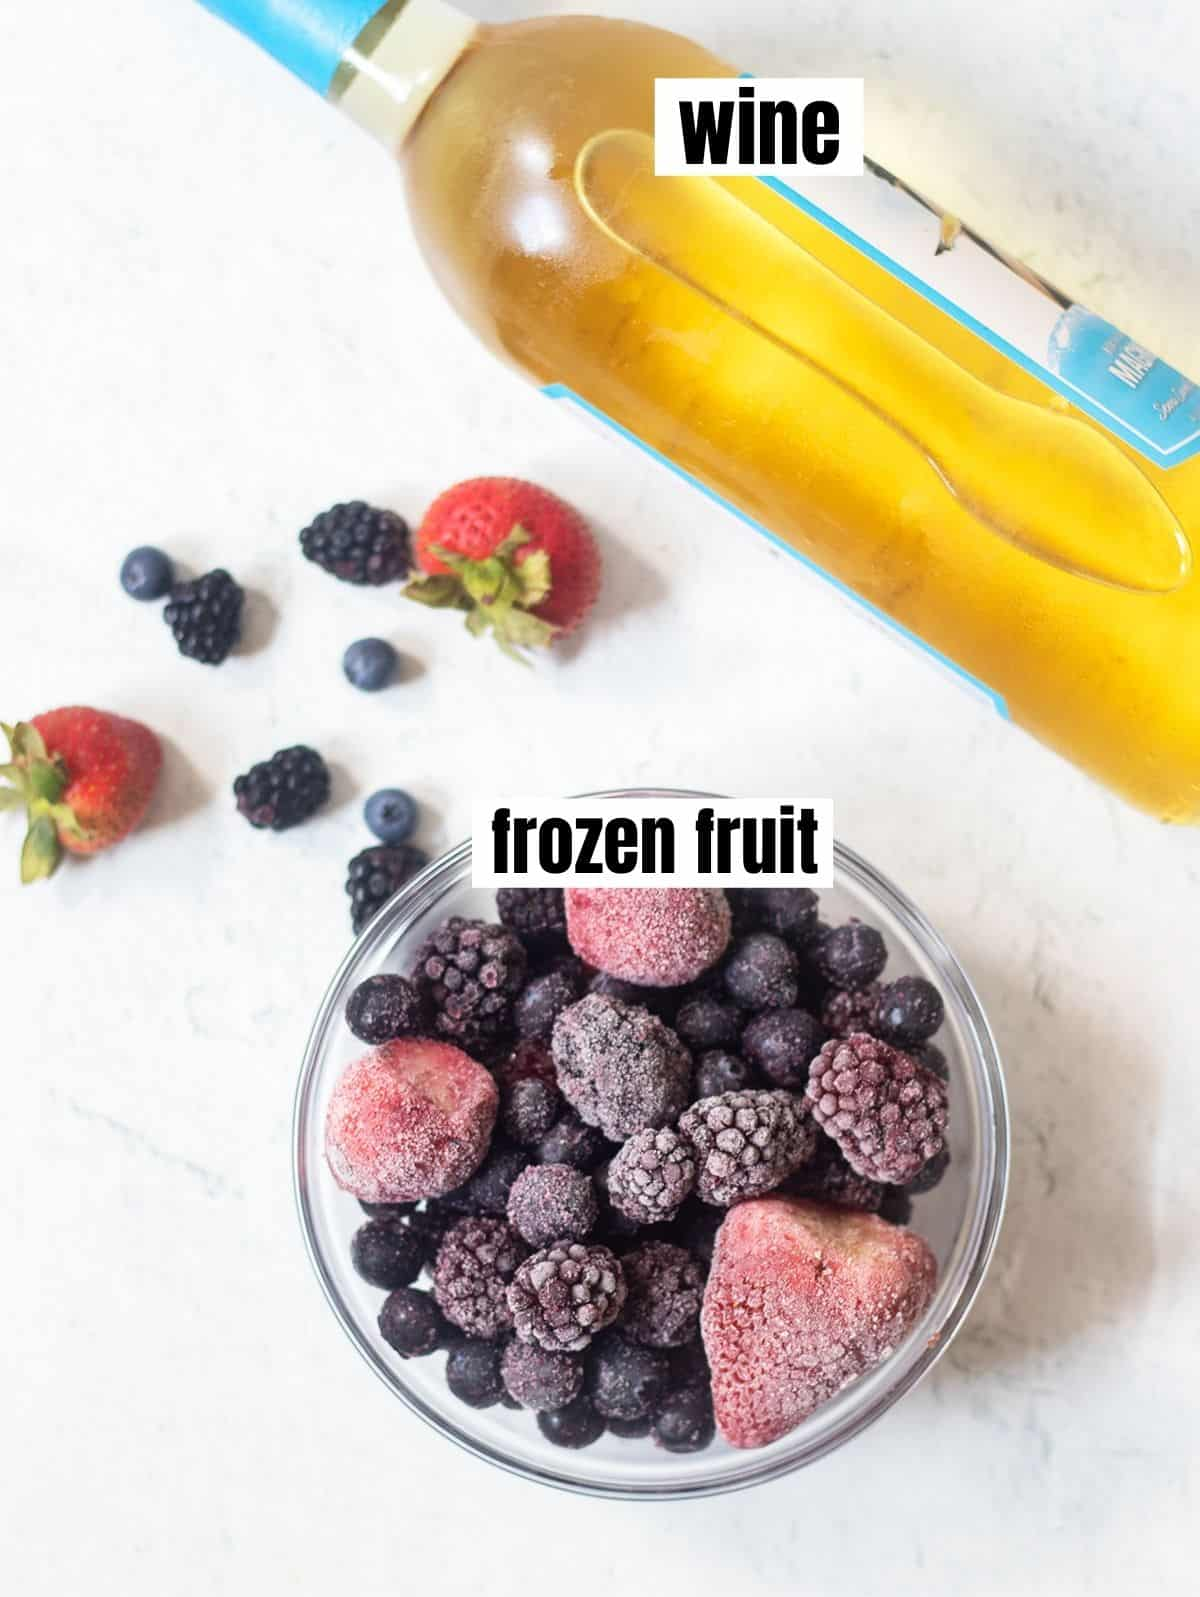 bottle of white wine and a blend of frozen blackberries, blueberries and strawberries in a bowl. Some fresh strawberries, blueberries and blackberries in the background.